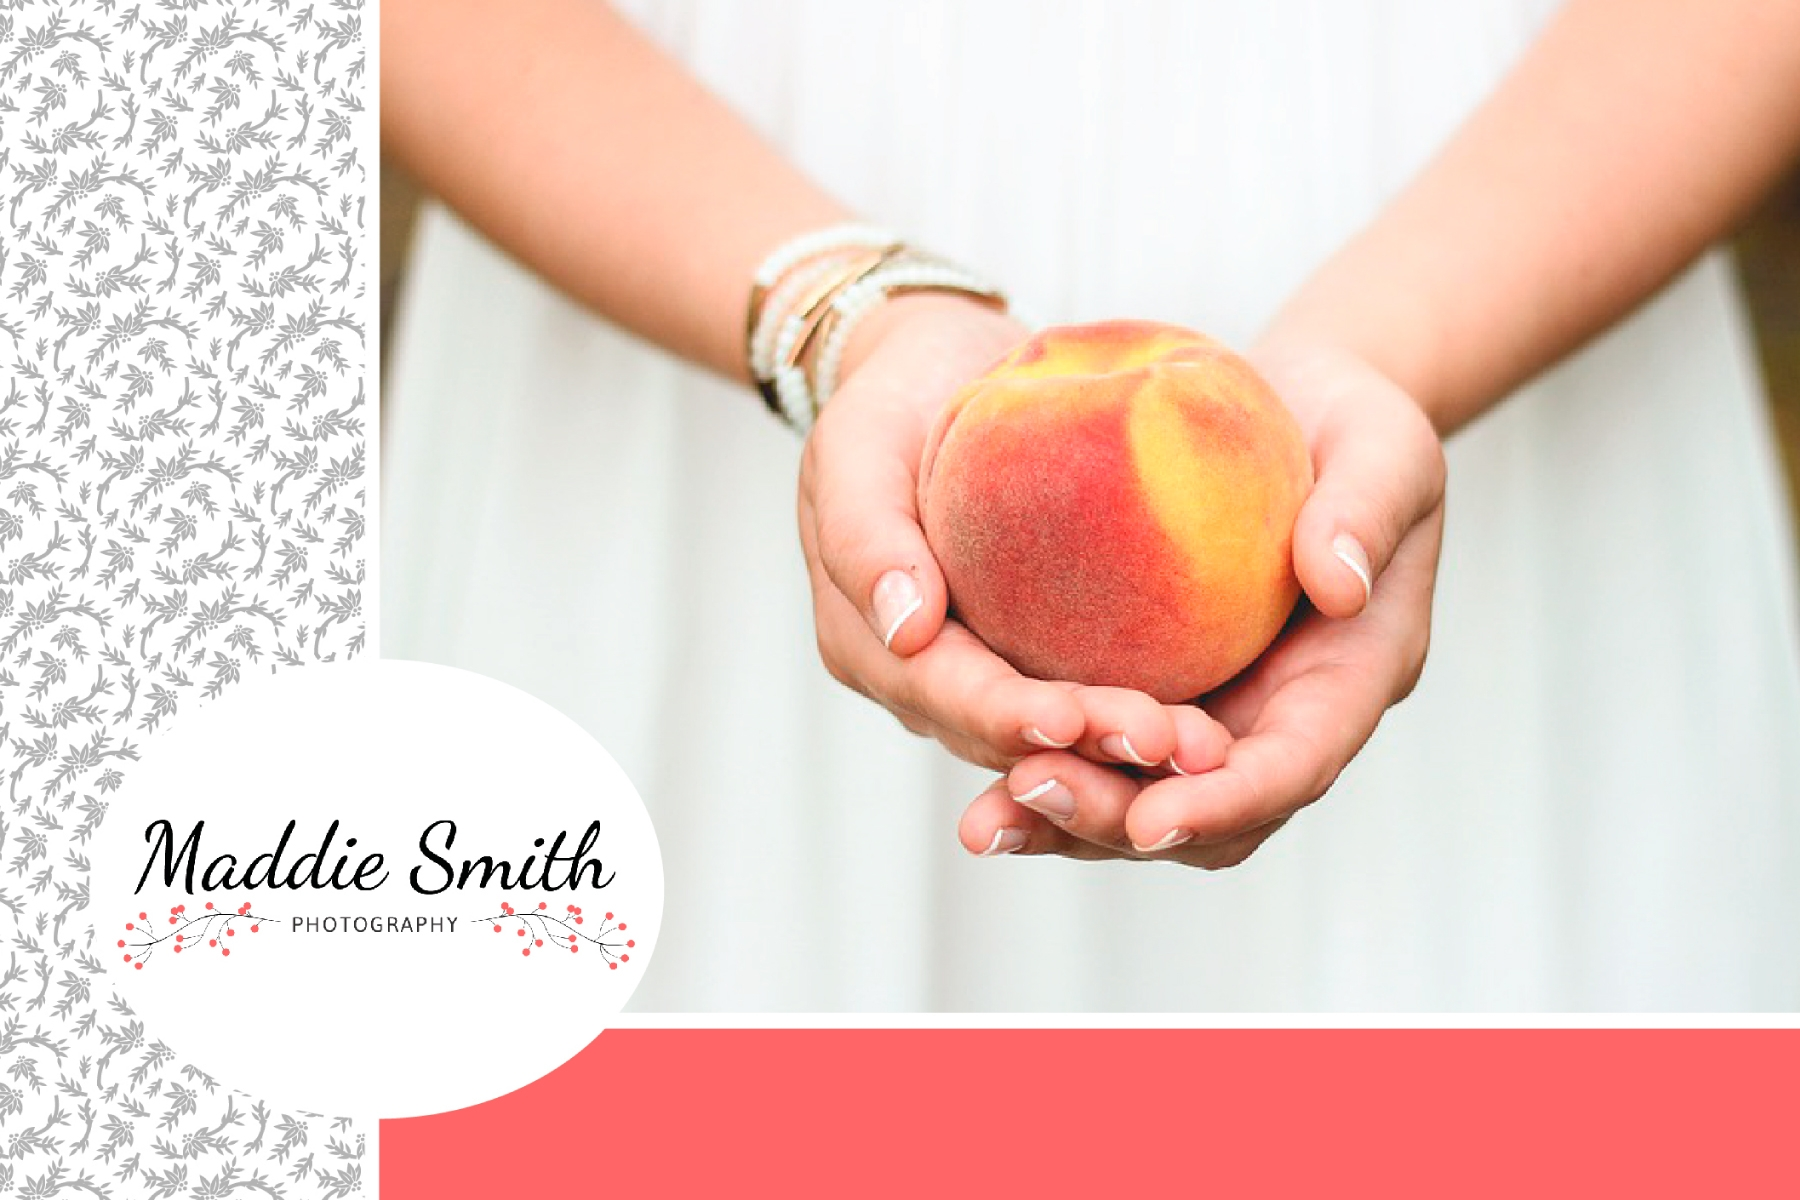 Branding Design for Maddie Smith Photography